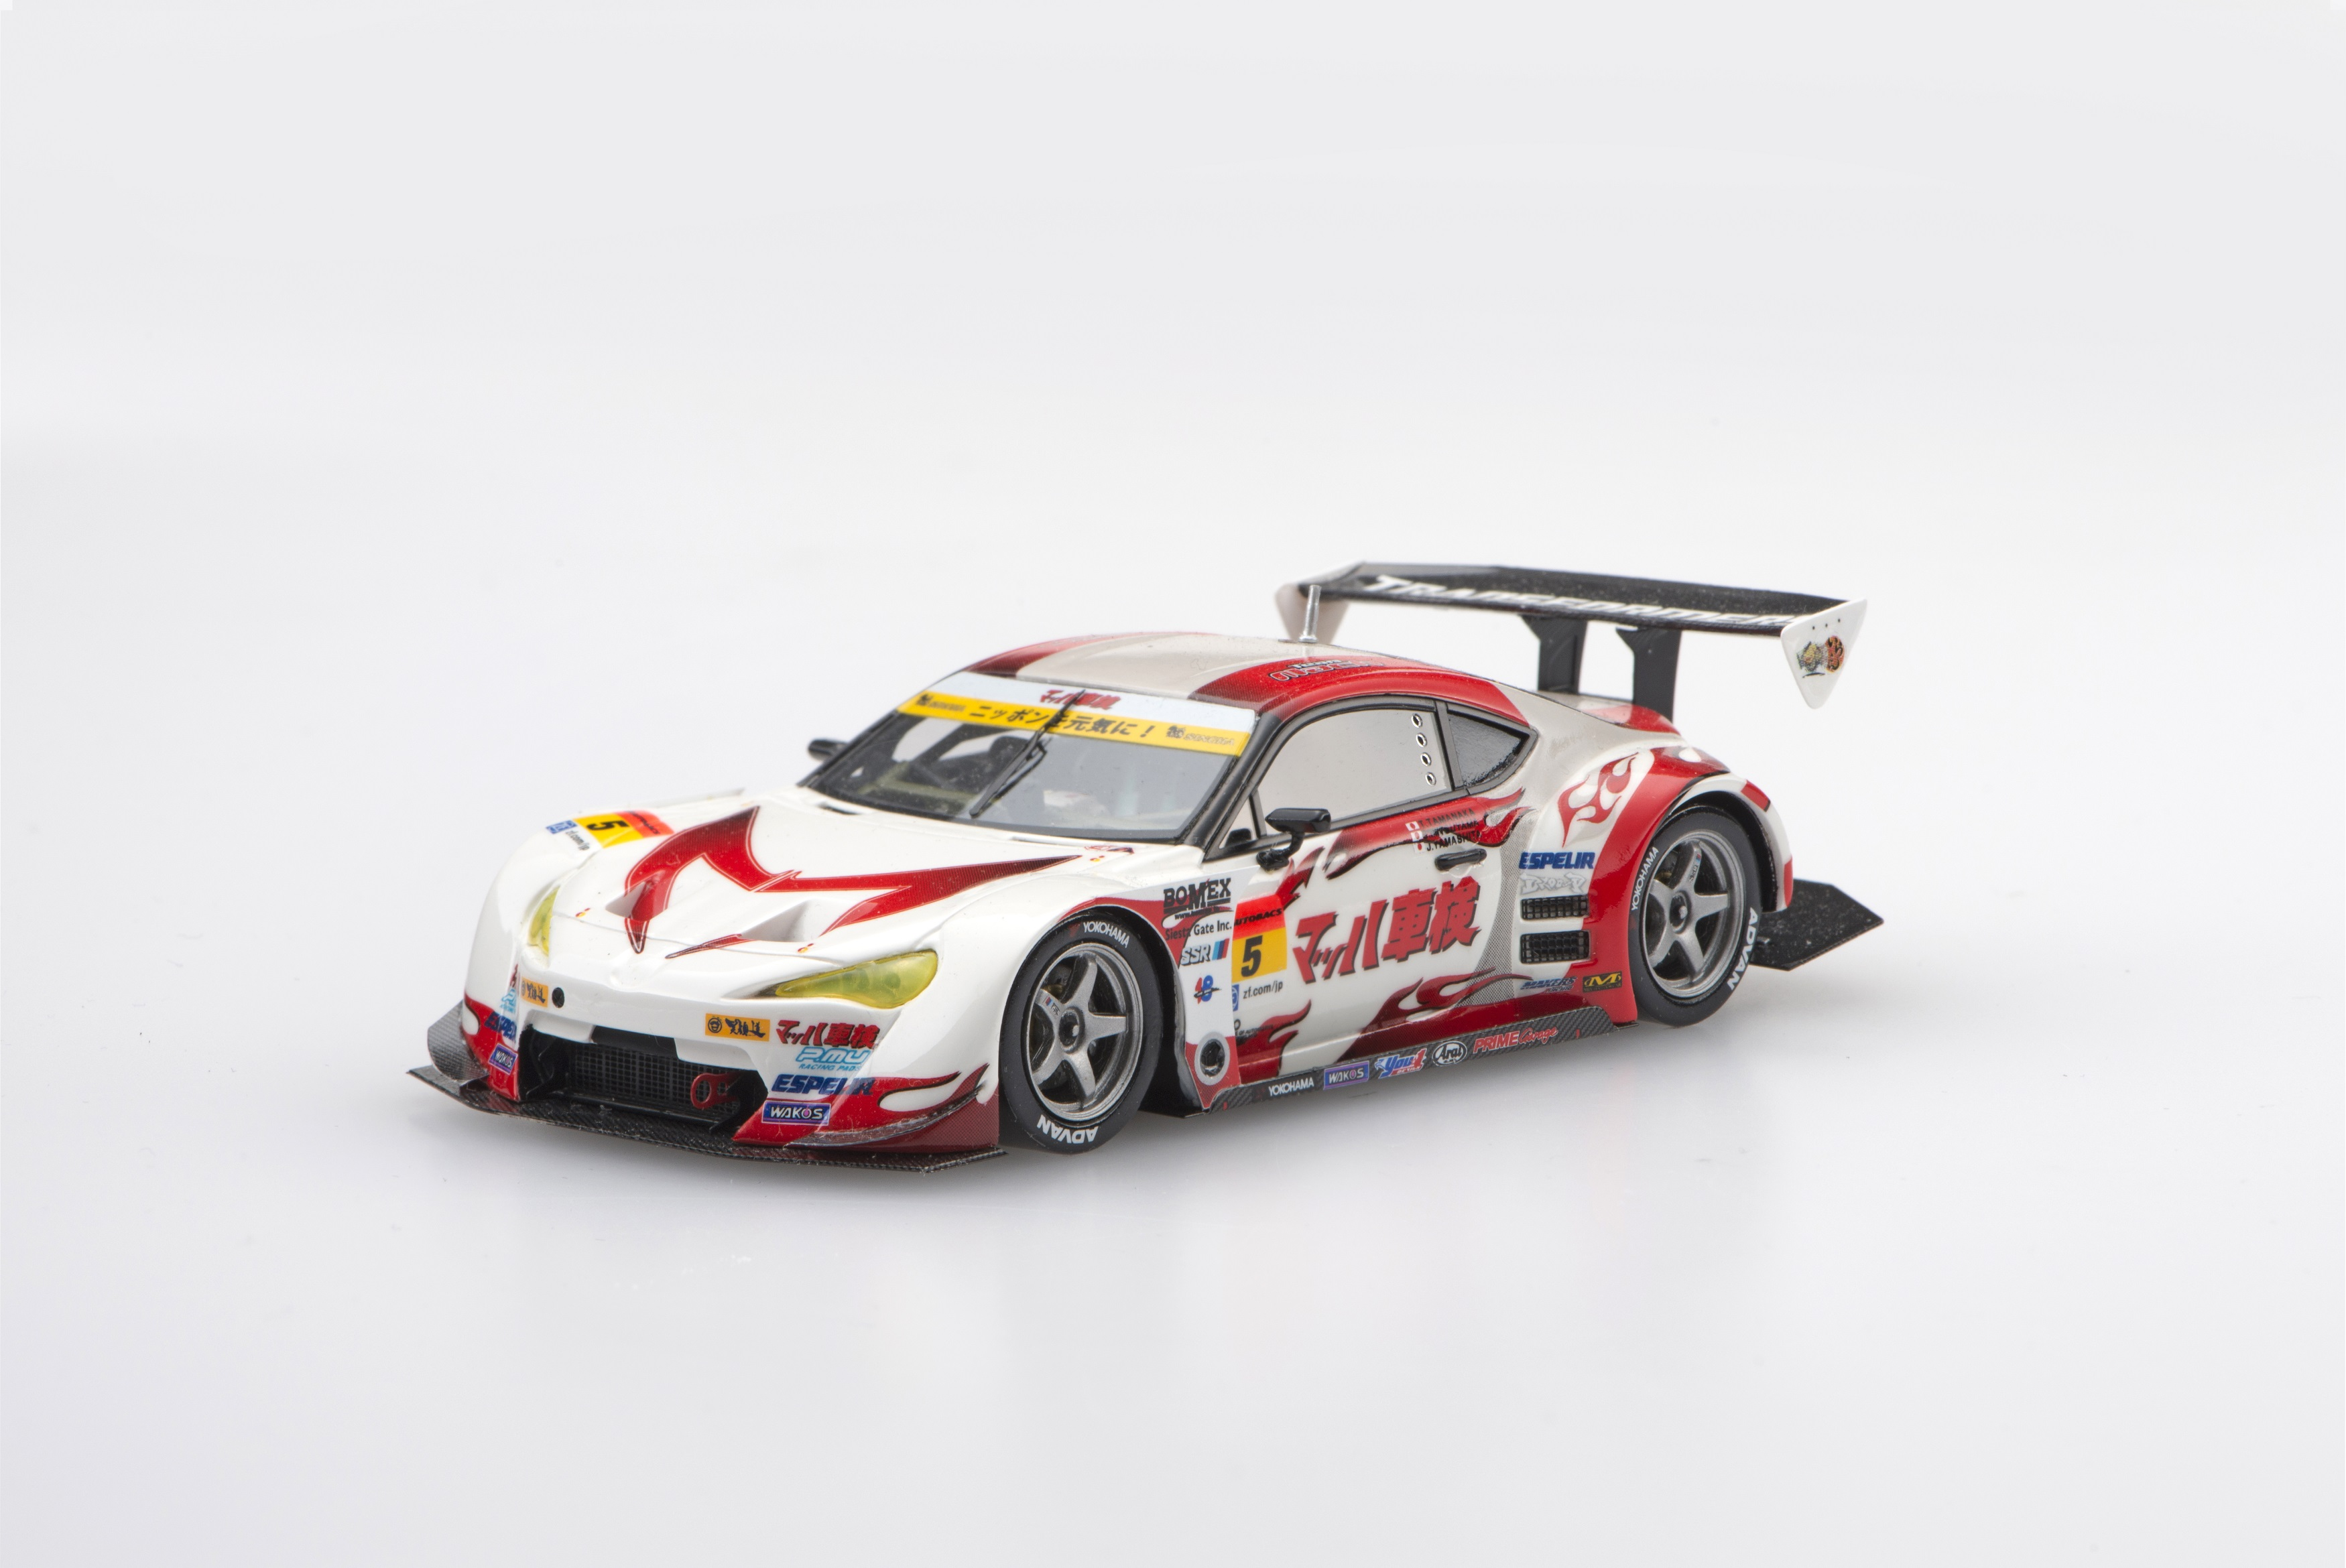 【45301】MACH SYAKEN with iracon 86c-west SUPER GT300 2015 No.5 【RESIN】